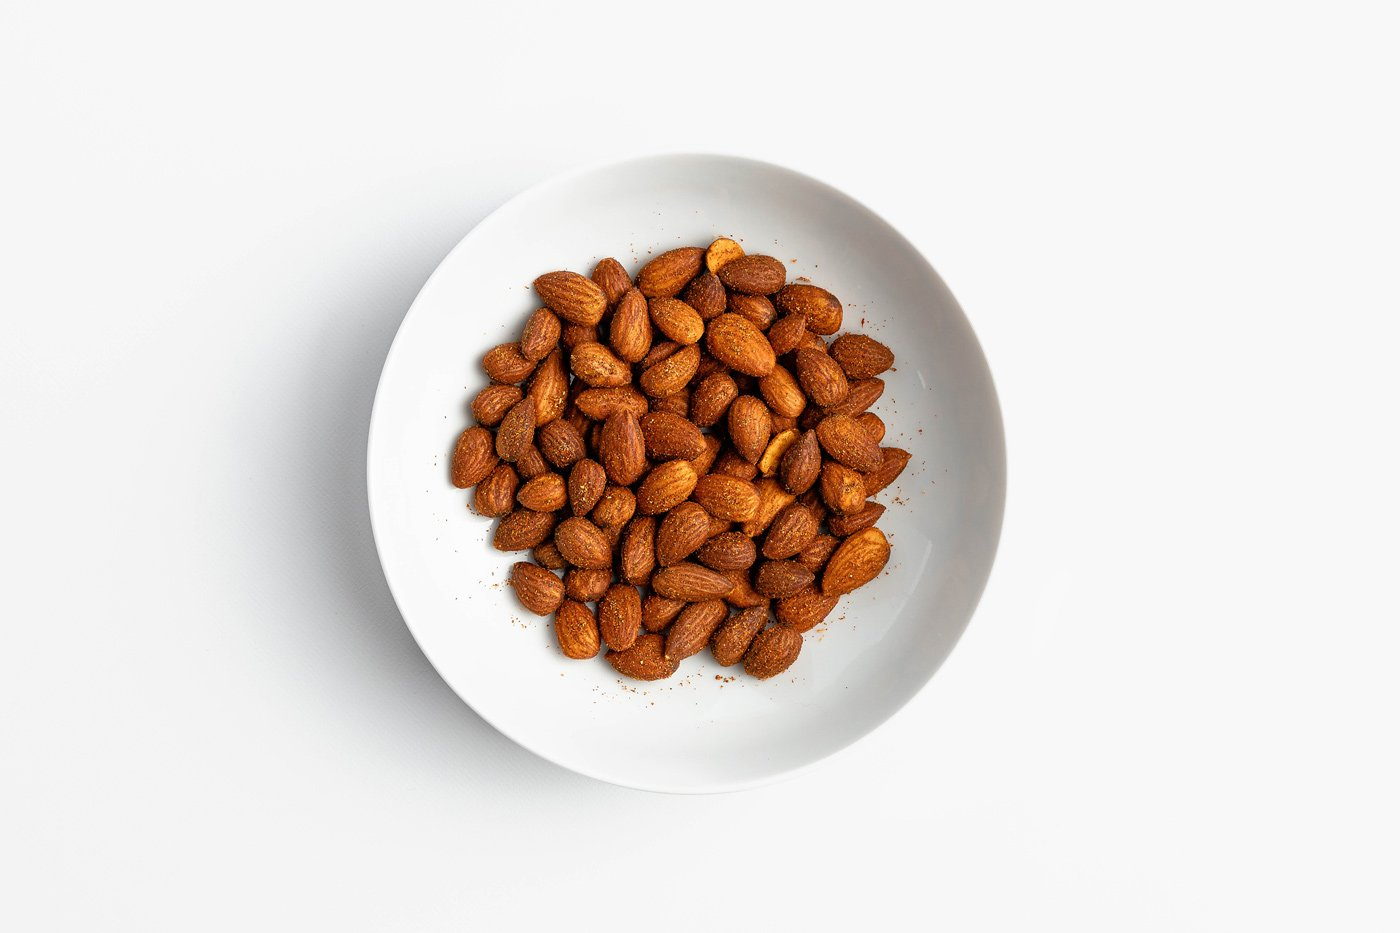 Lemon Chili Almonds Product Image